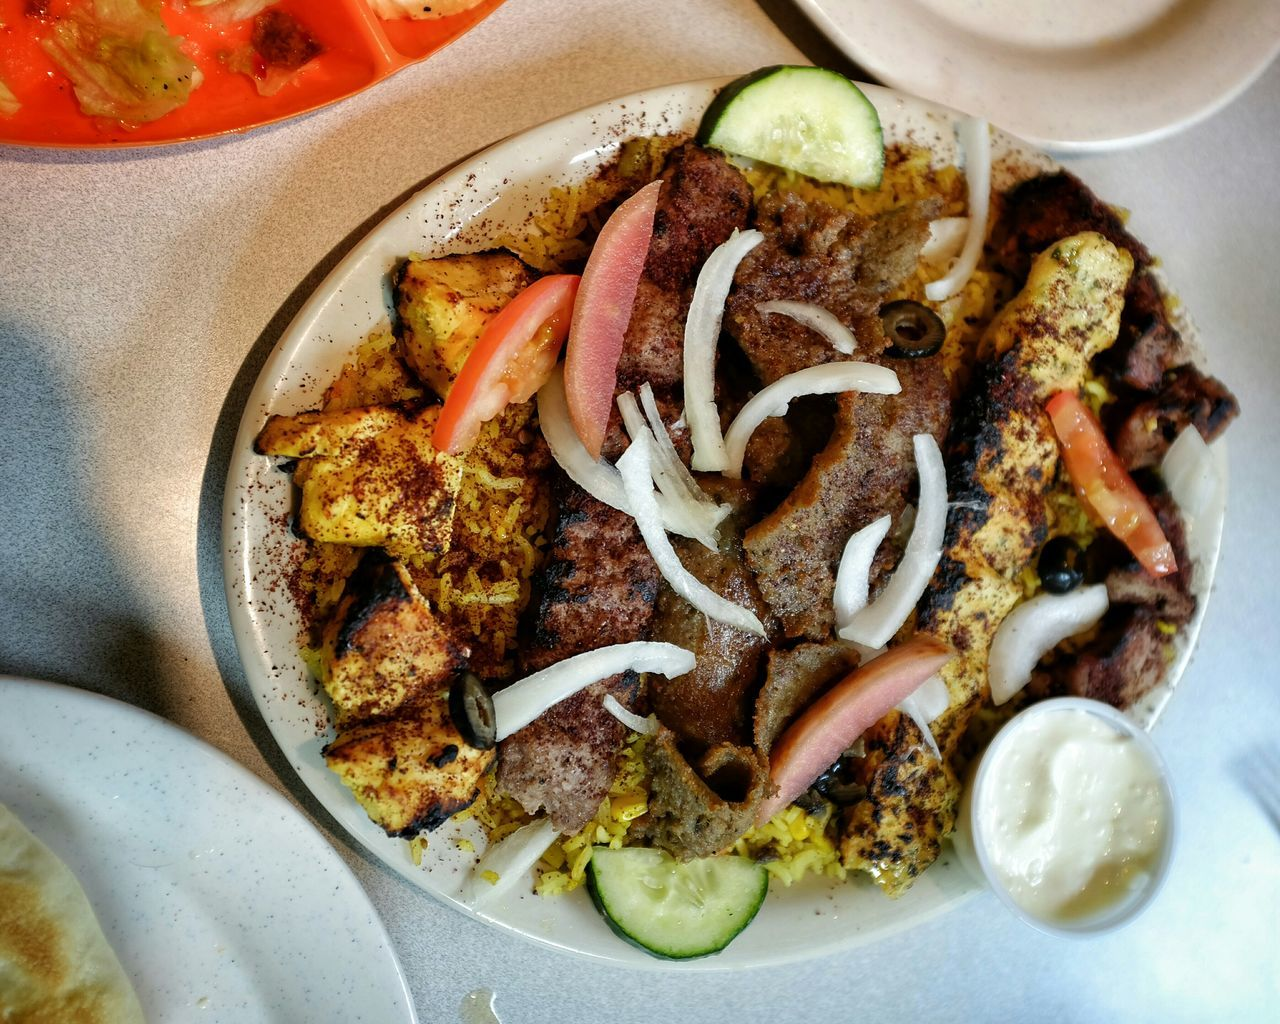 Briyani Chicken Tika Shawarma Kabob Falafel Babaganoush Iraqi  Hummus A Day In The Life Whats For Dinner?